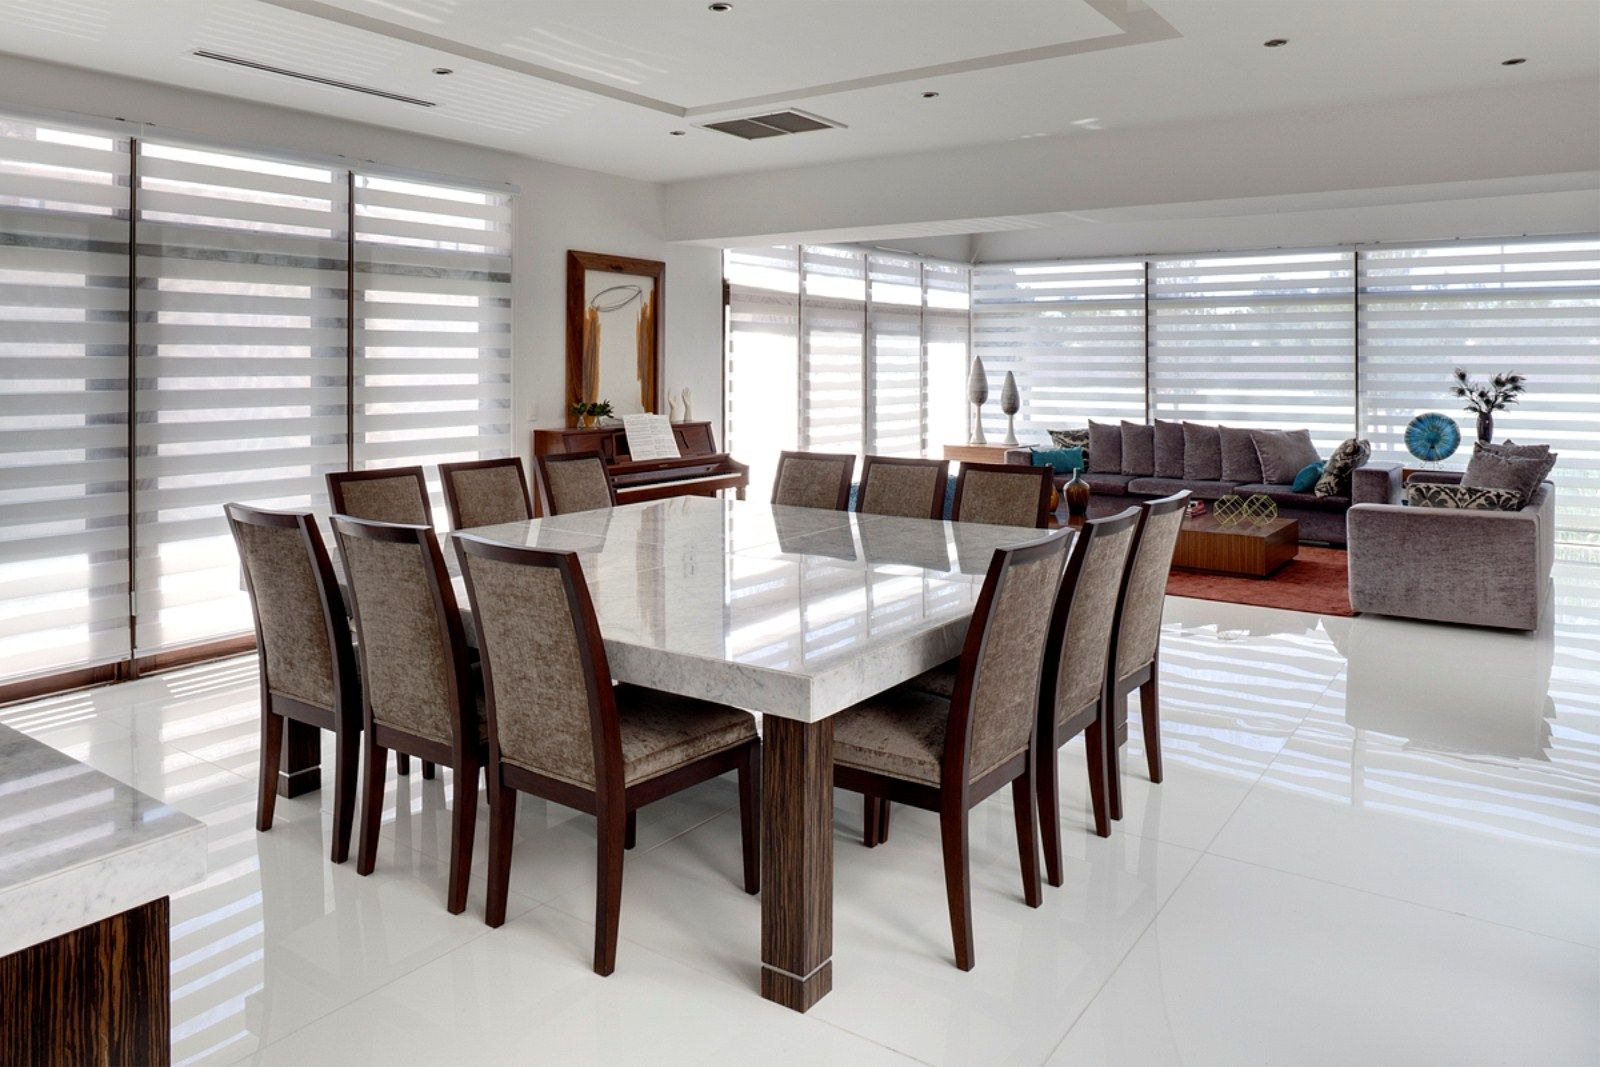 Large square dining table seats